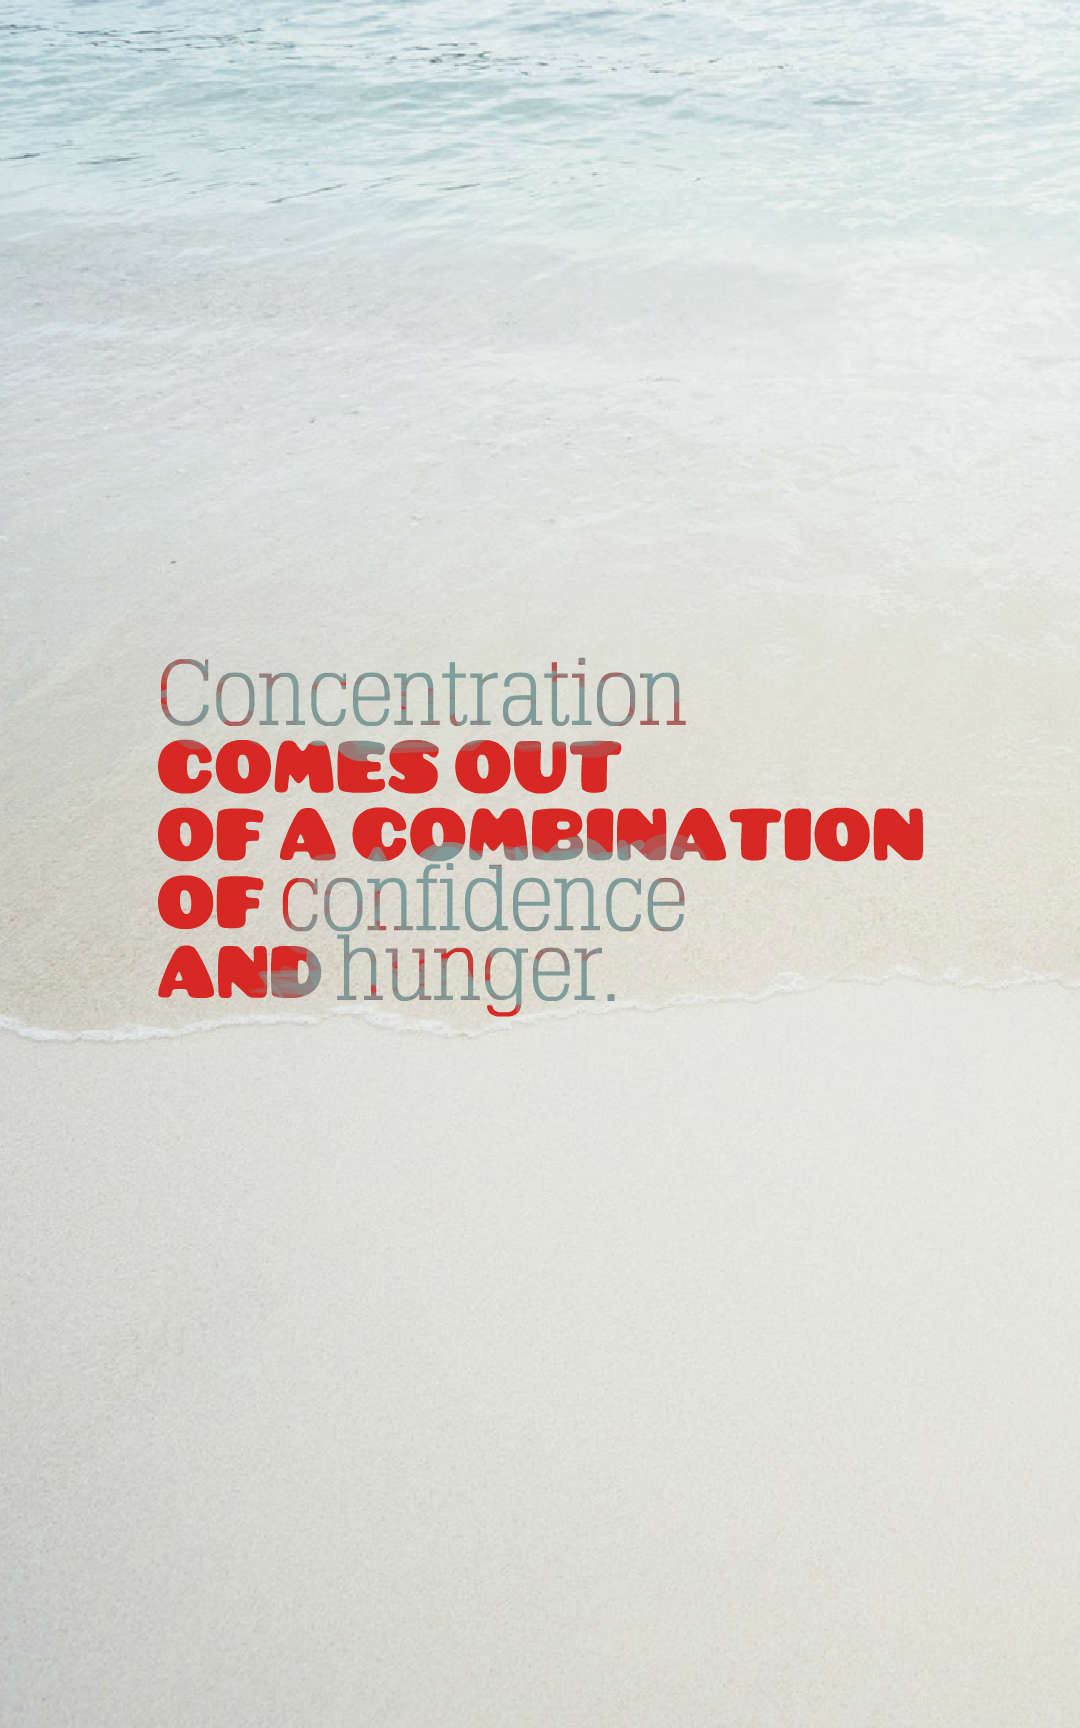 Quotes image of Concentration comes out of a combination of confidence and hunger.